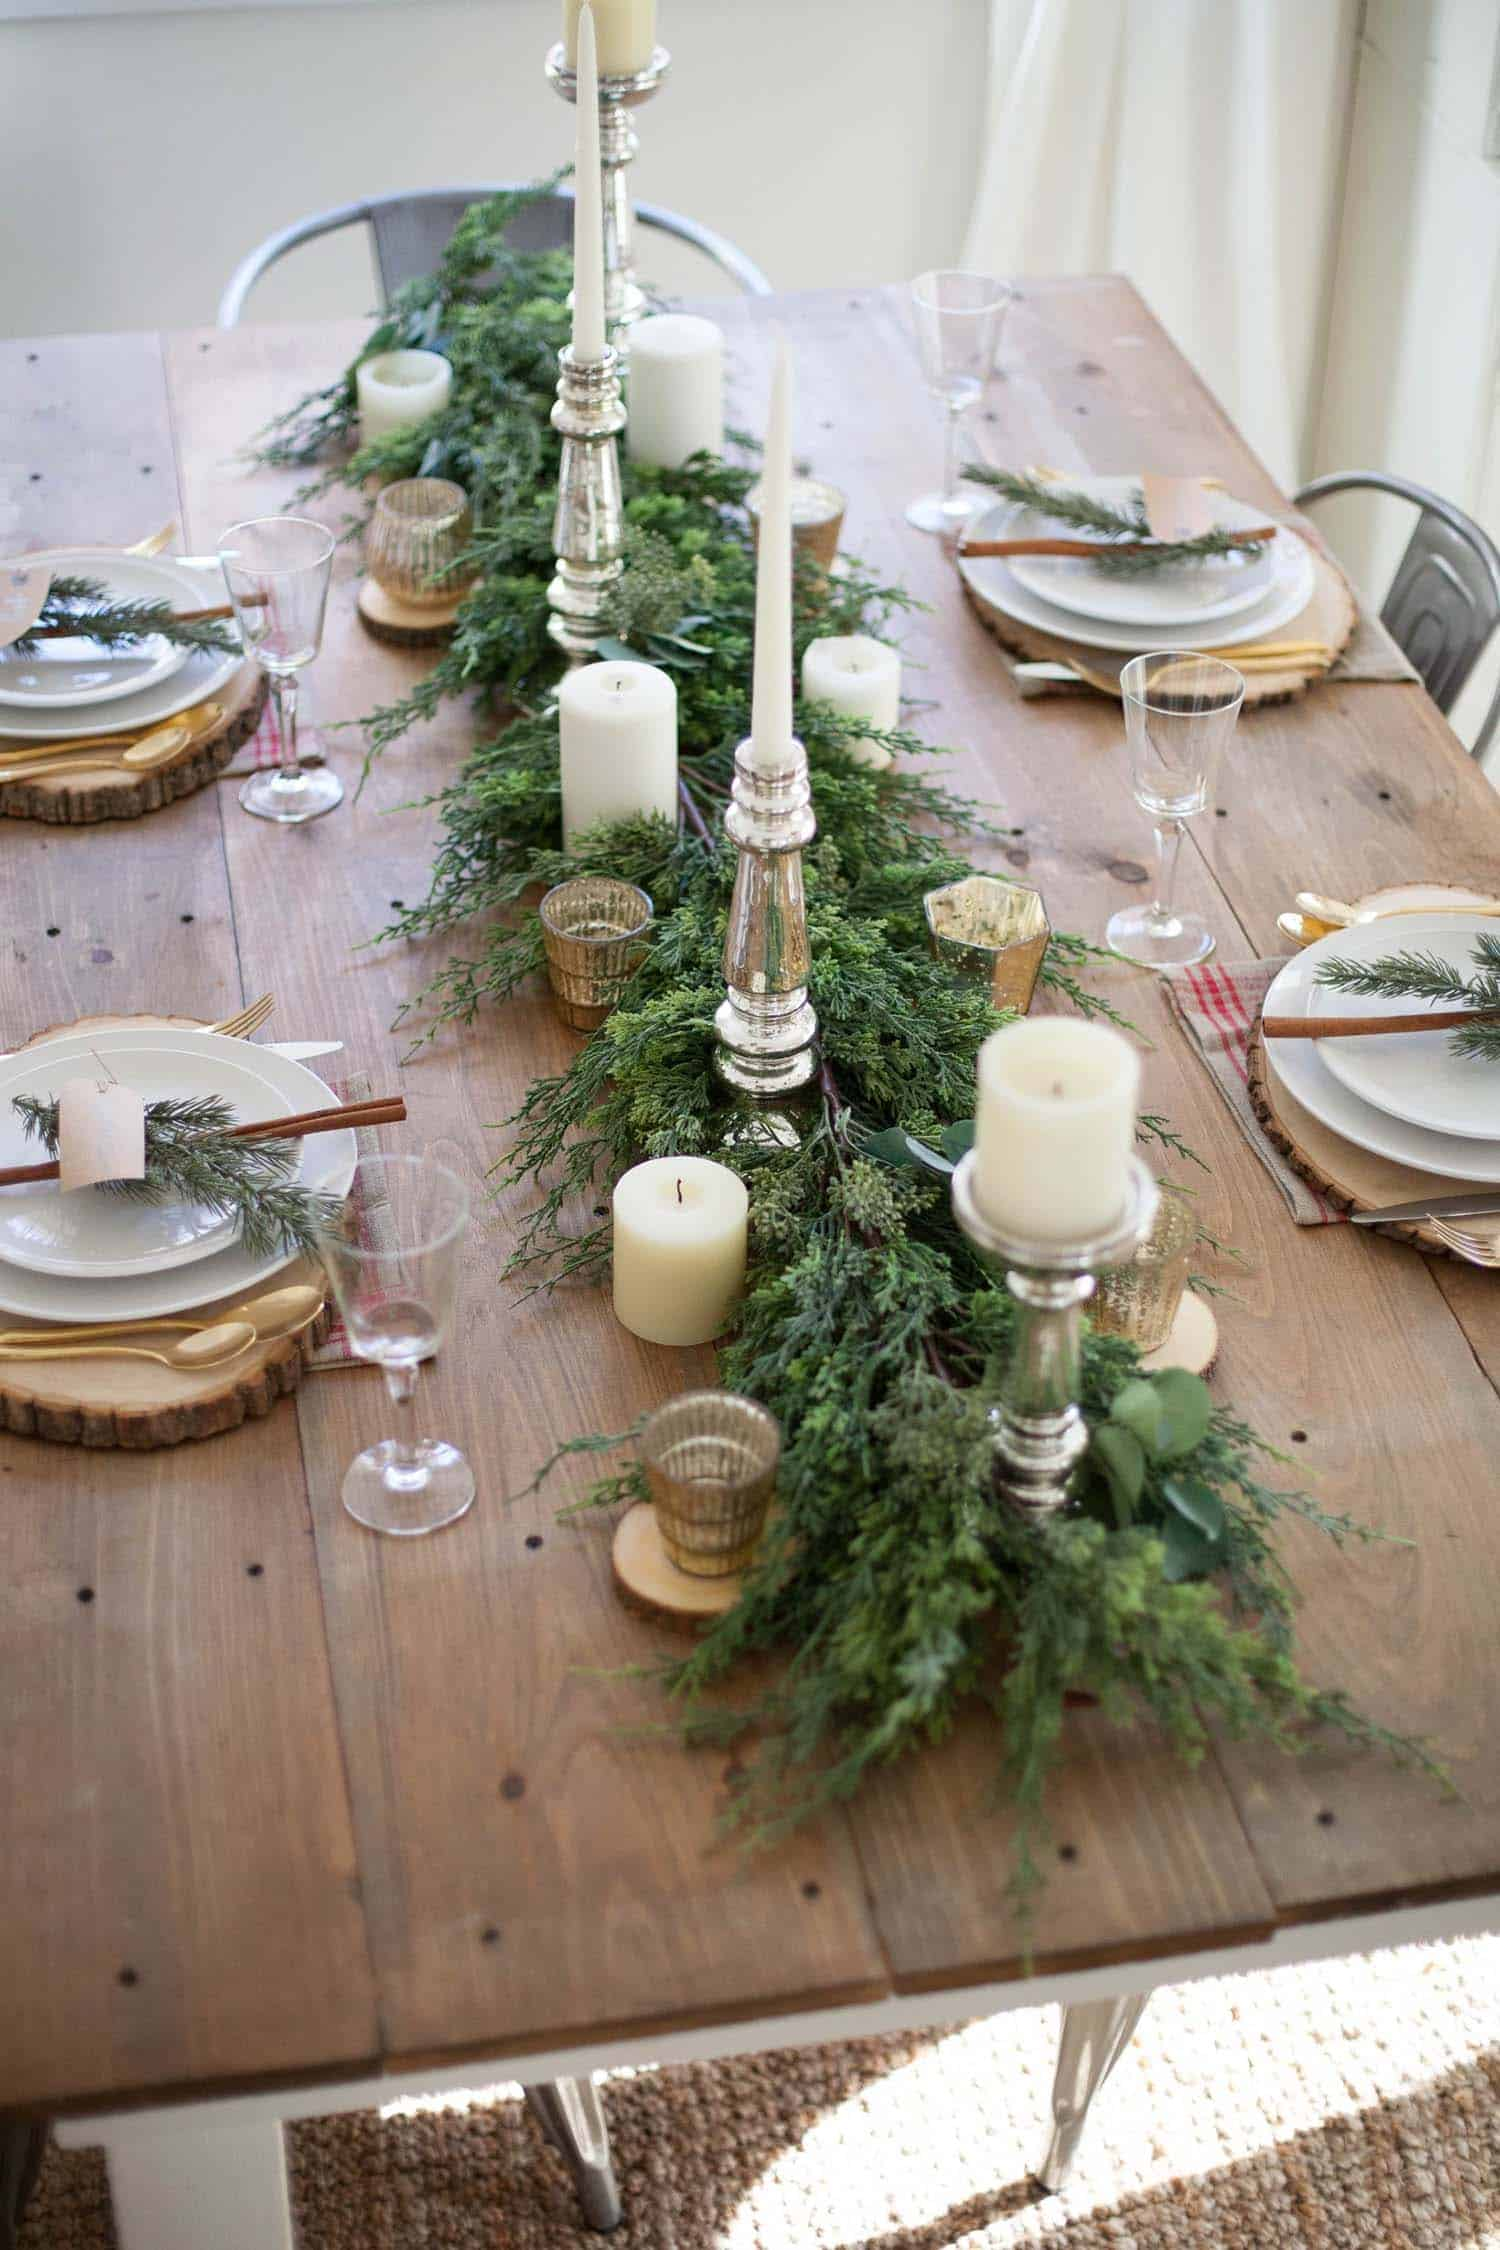 25 Absolutely Gorgeous Centerpiece Ideas For Your Christmas Table